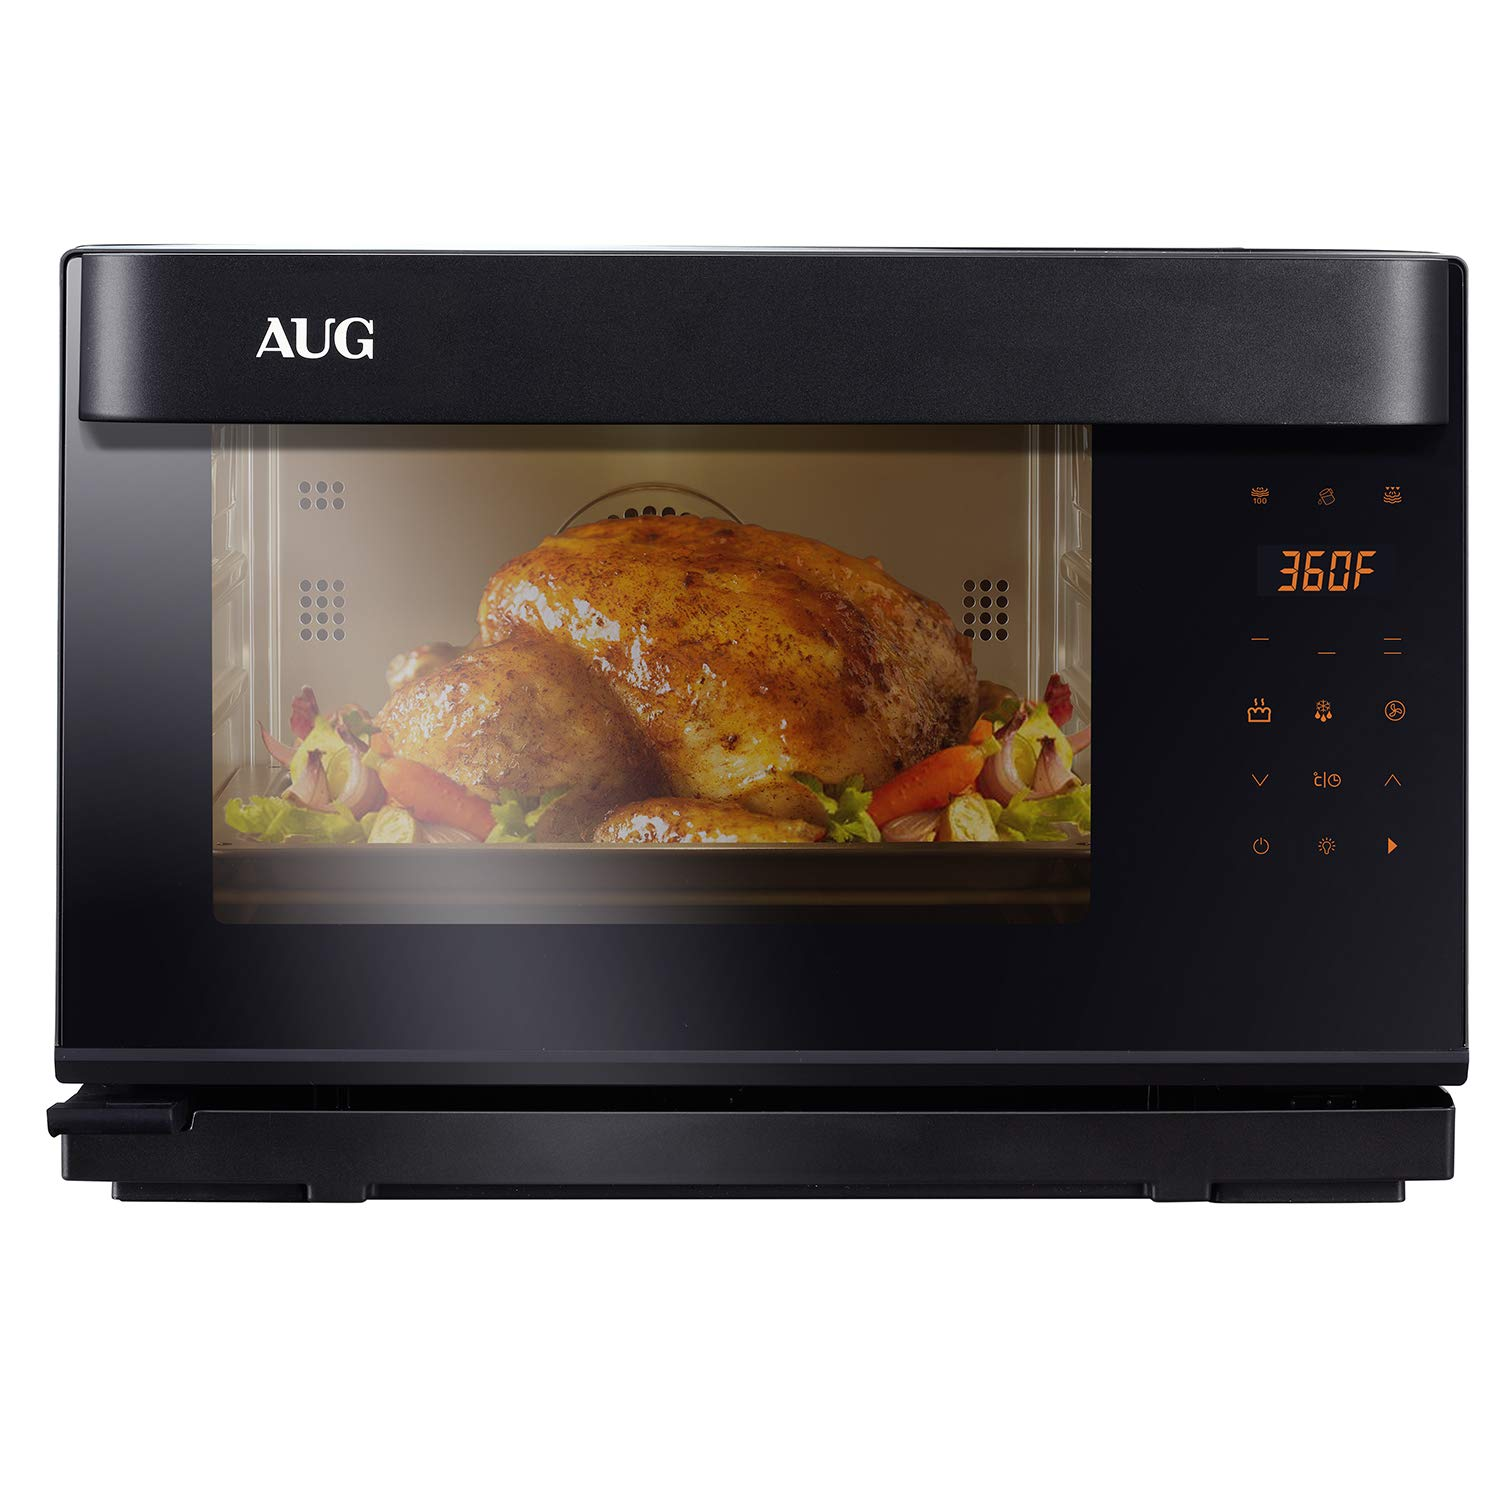 AUG Convection Steam best convection oven